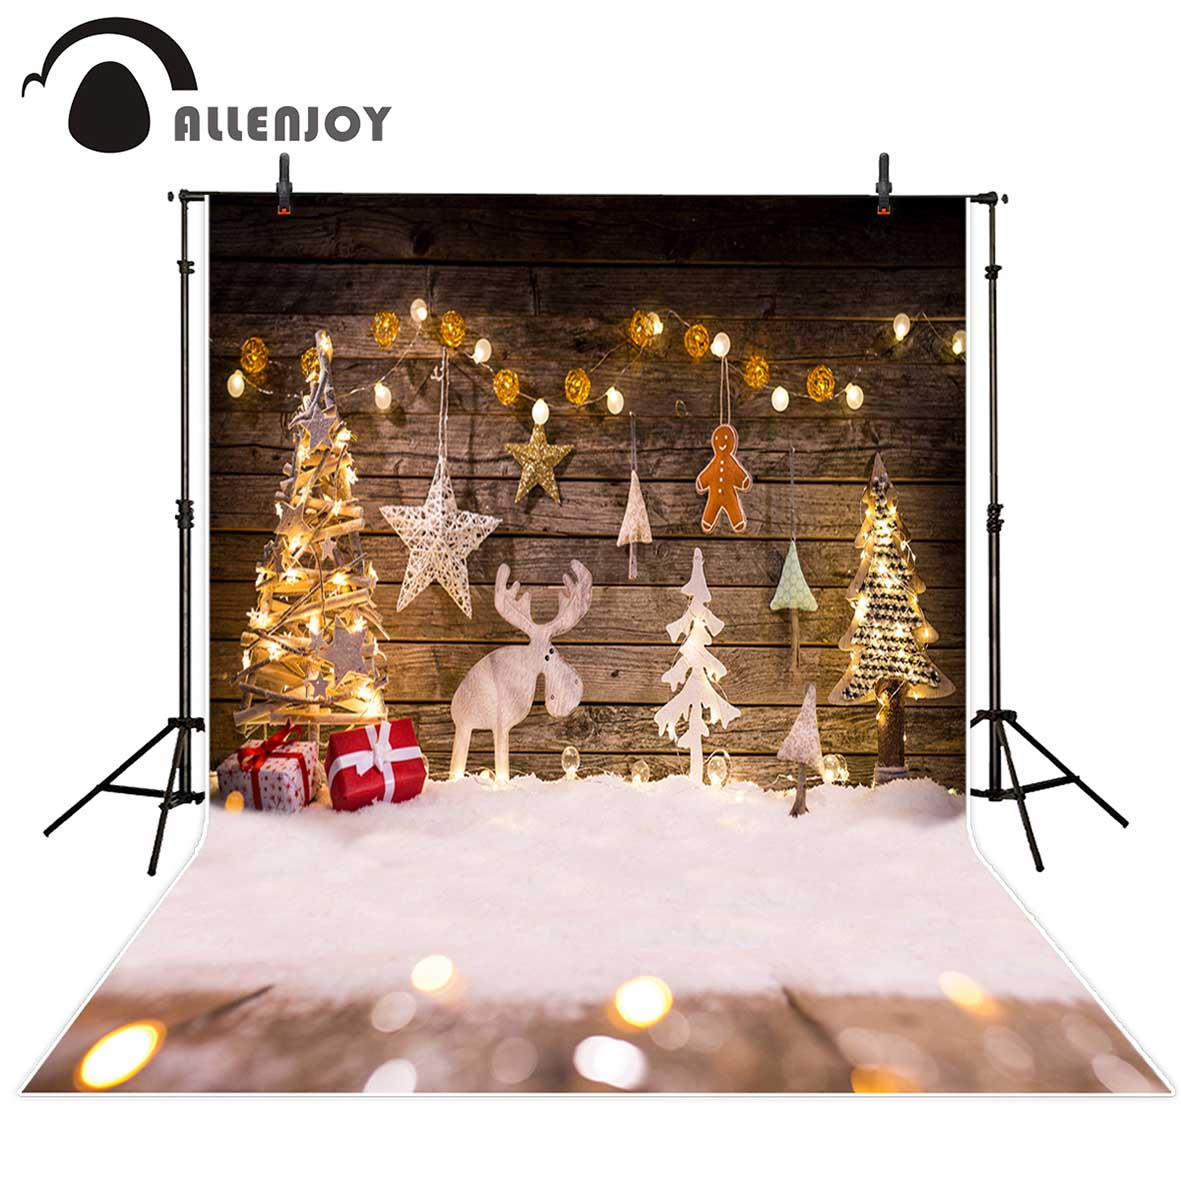 Allenjoy background for photo Christmas shiny tree snow kids wood wall backdrop photocall photobooth photo studio professional allenjoy photo backdrops blue vintage wood wall photo studio props photobooth photocall fantasy background newborn